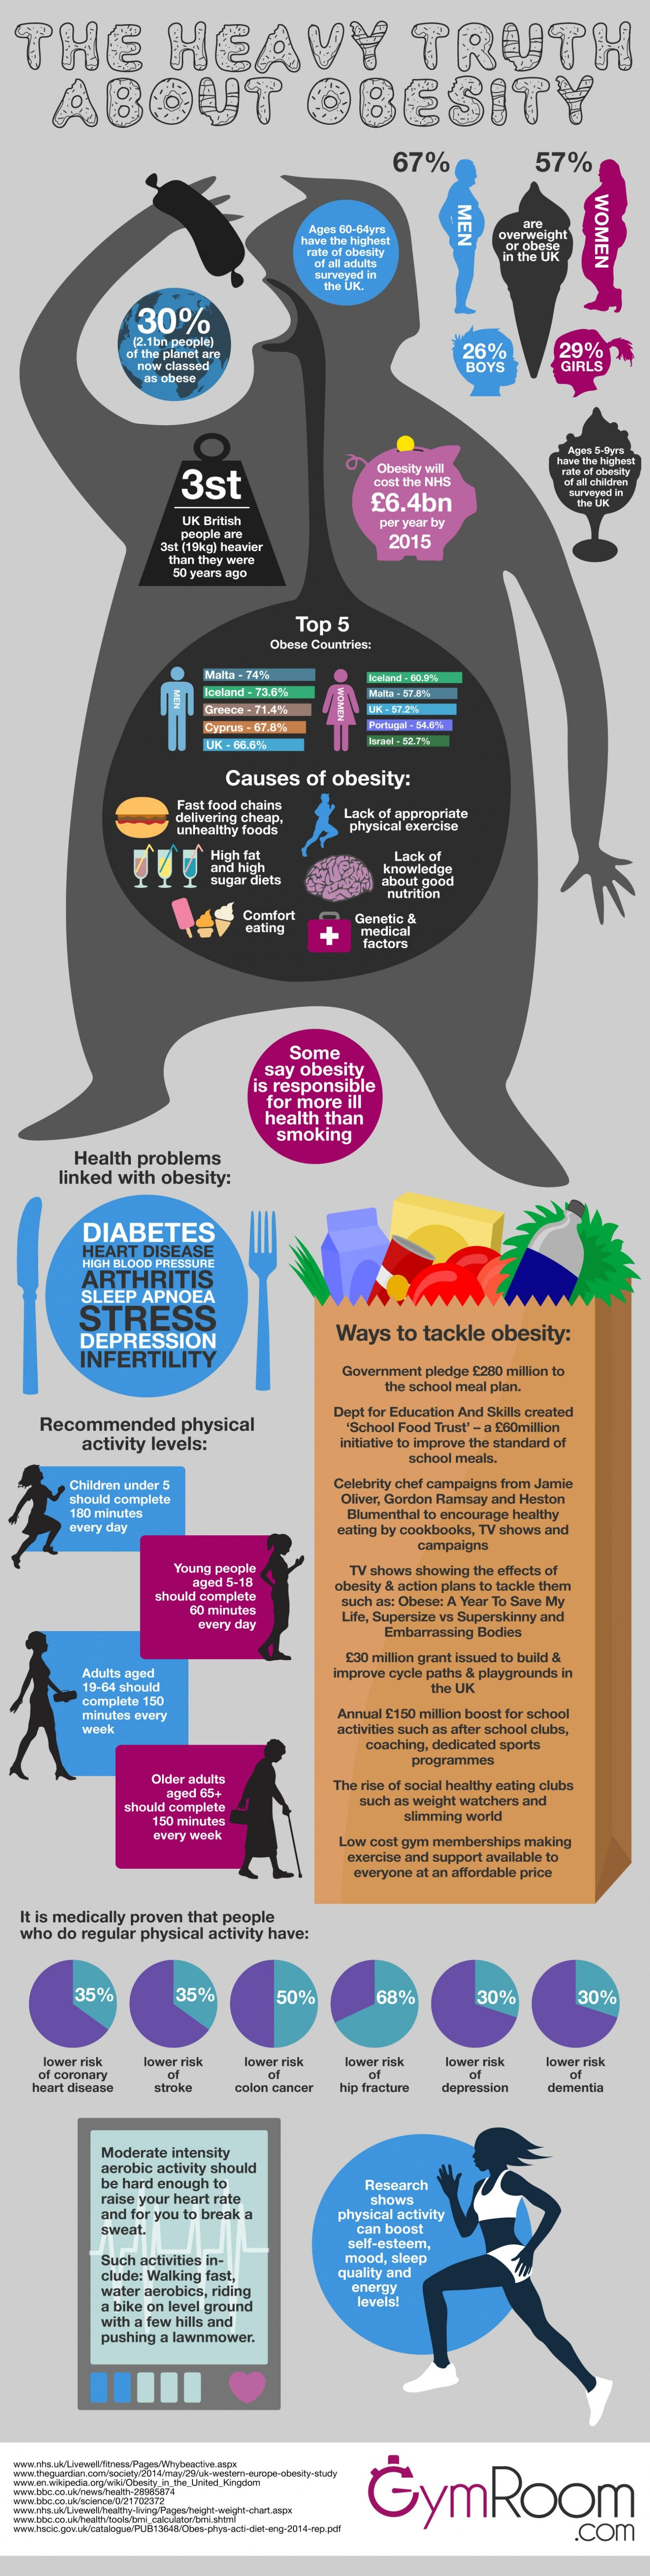 Truth Obesity Infographic 2014 #